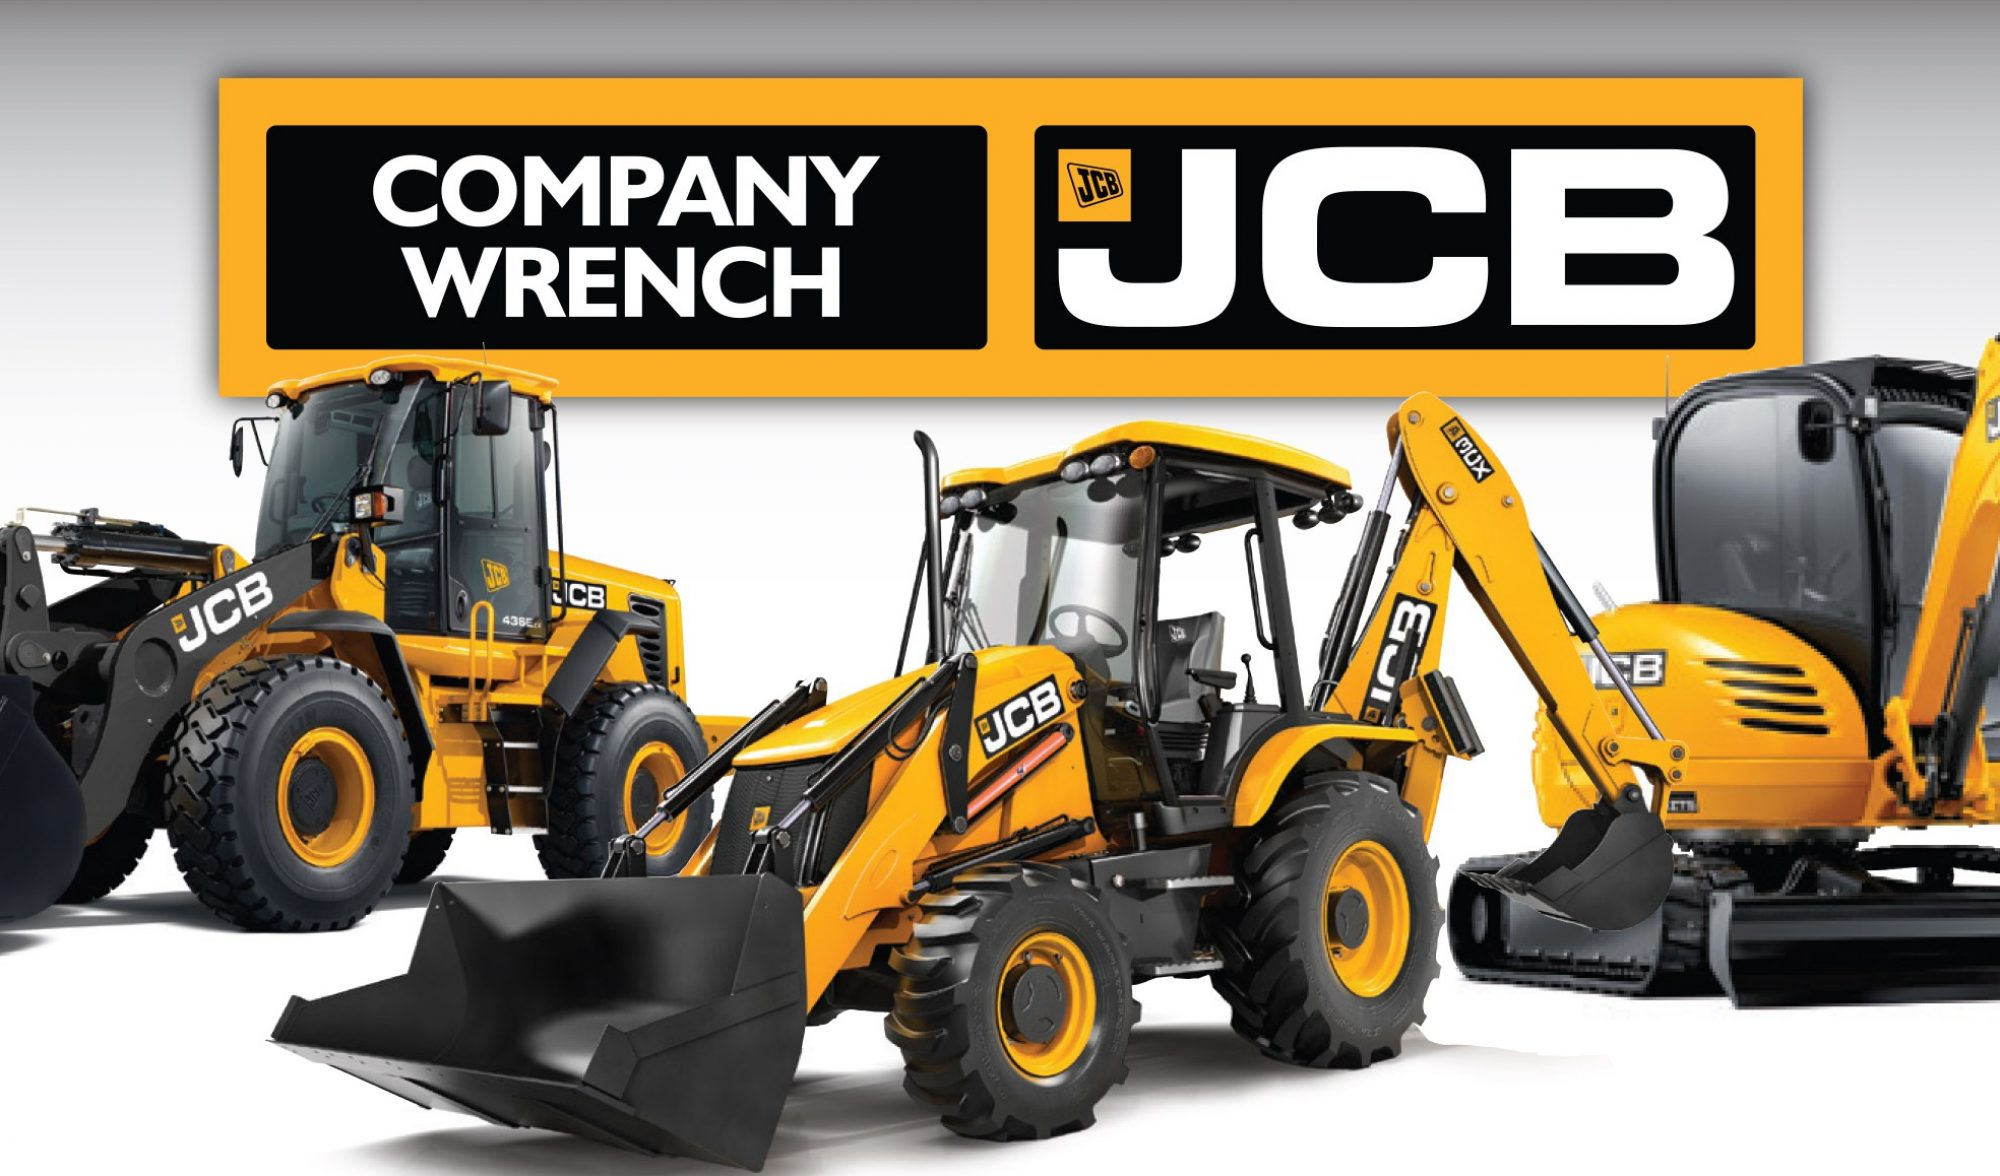 Jcb Micro Service Manual Daewoo Cielo Workshop Free Download Array Products U2013 Rh Com